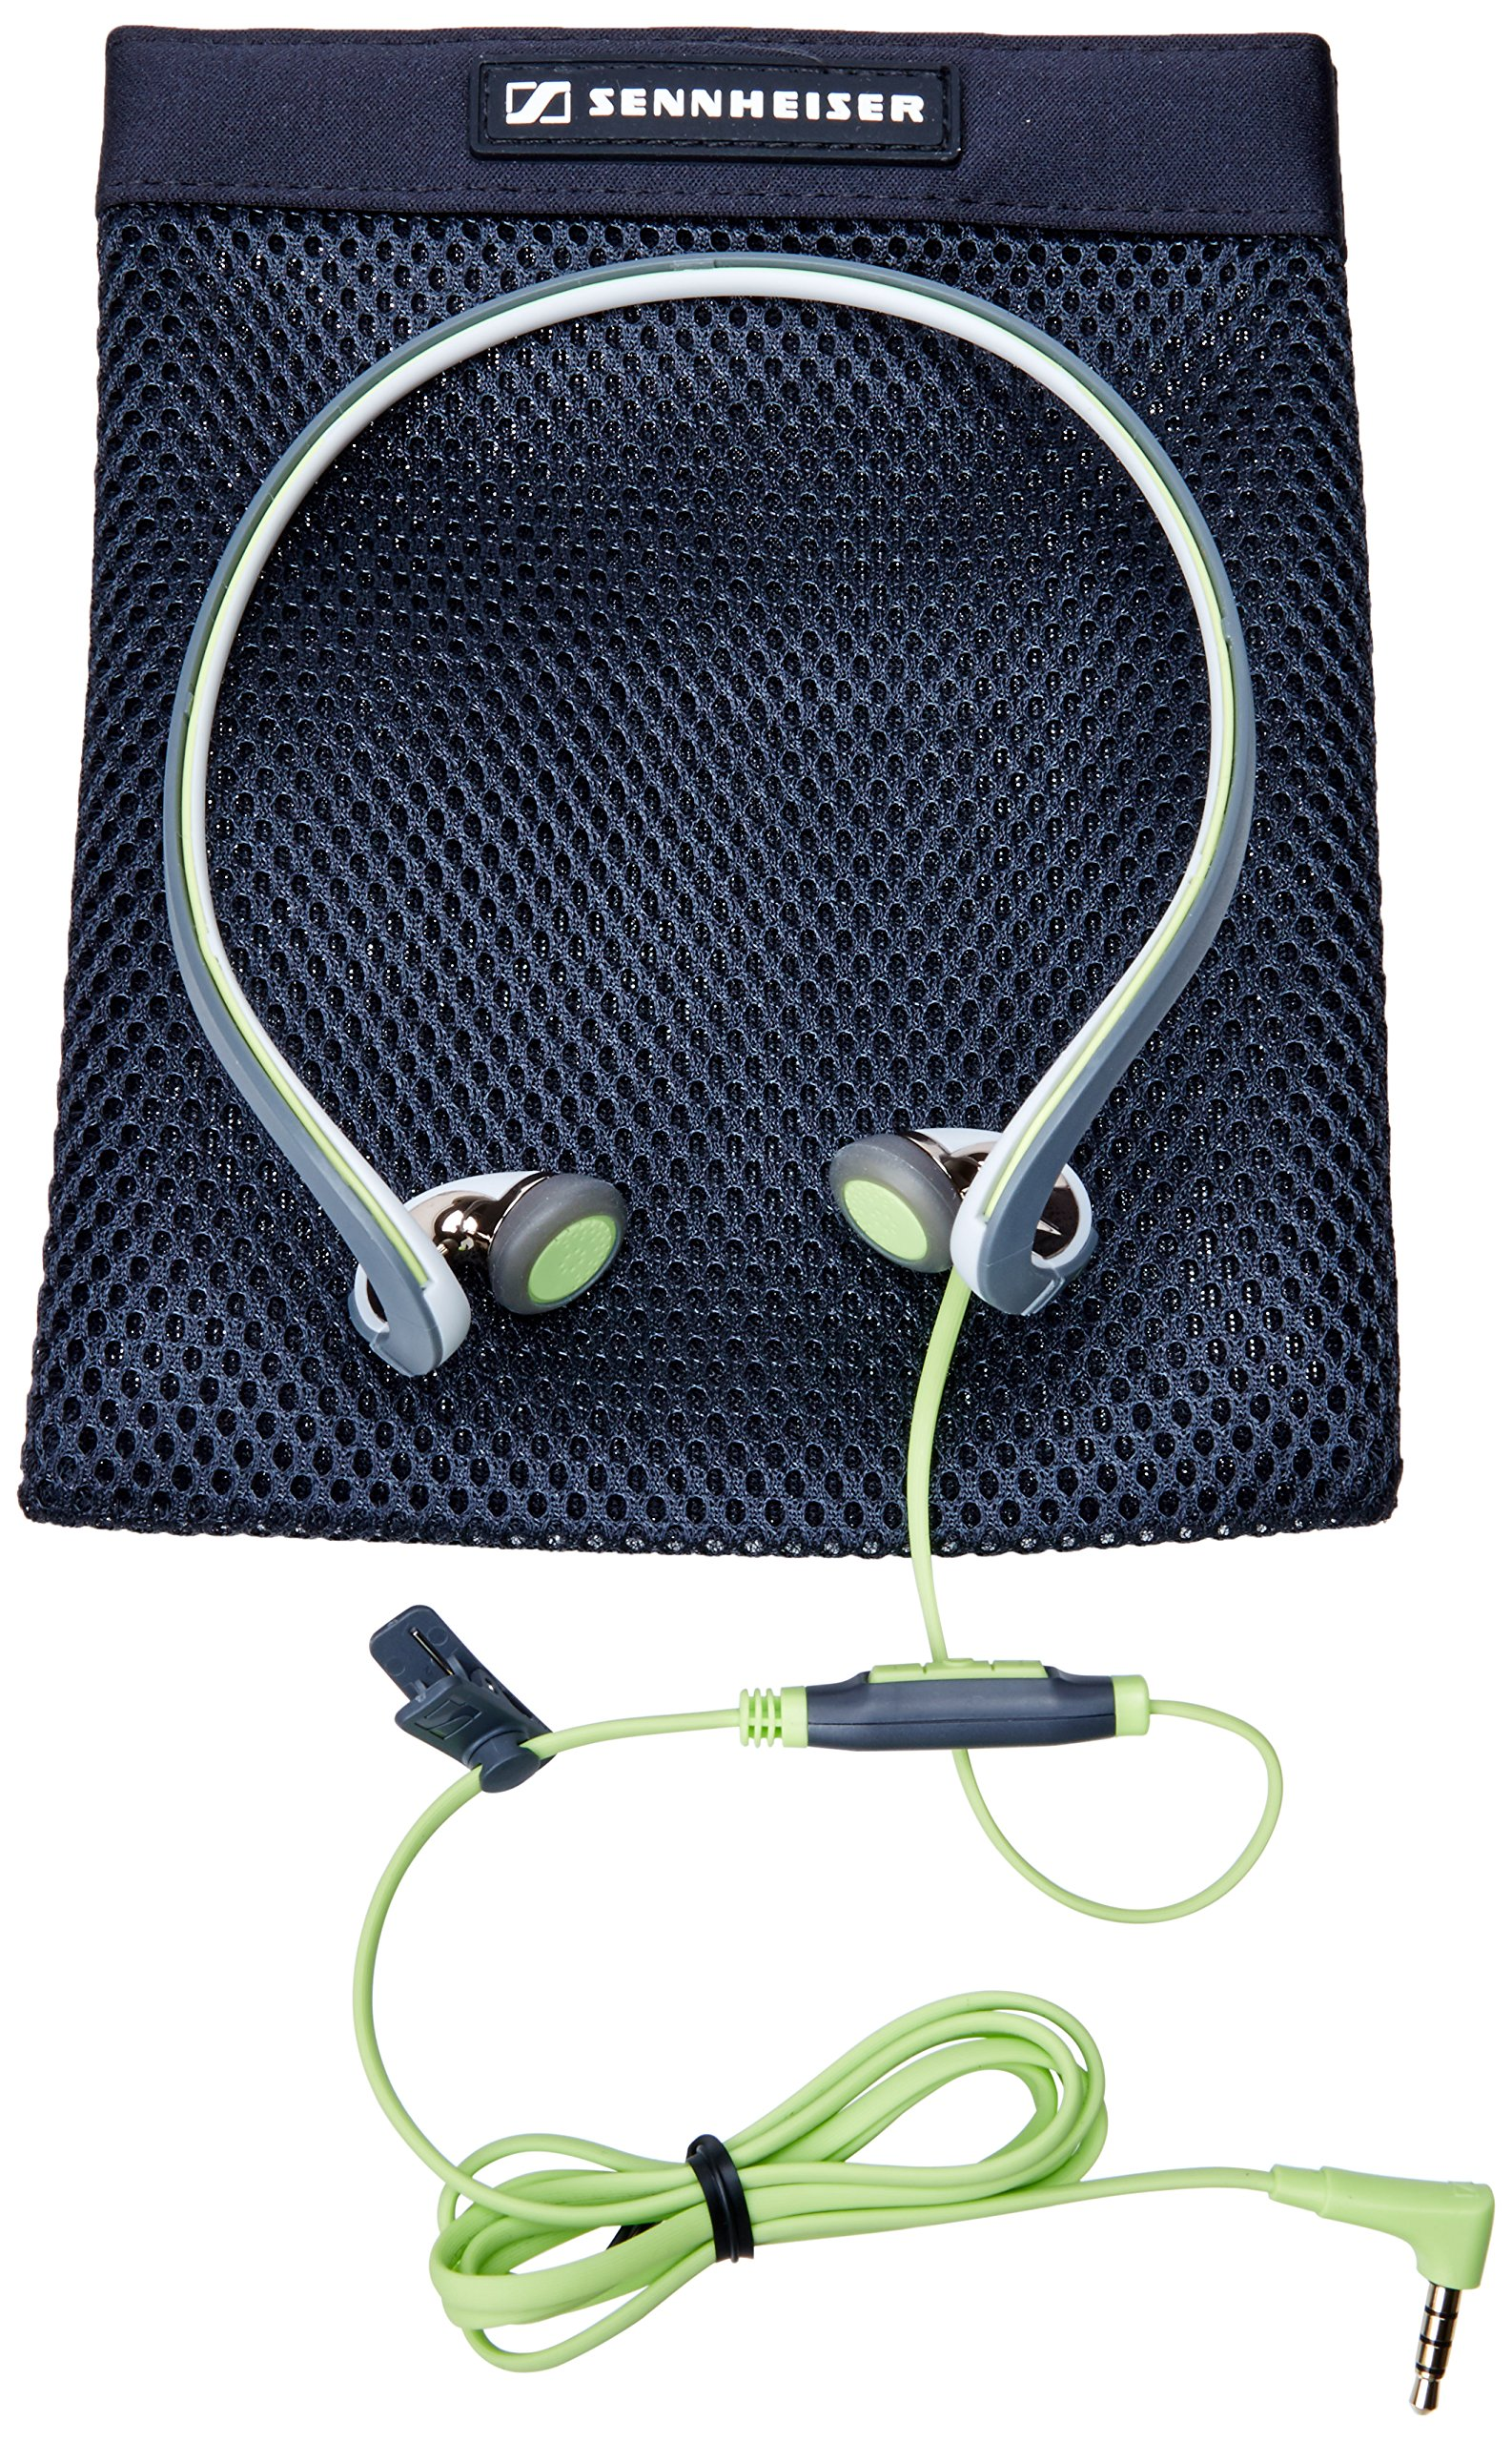 Sennheiser PMX 686G Sports Earbud Neckband Headset for Android Devices